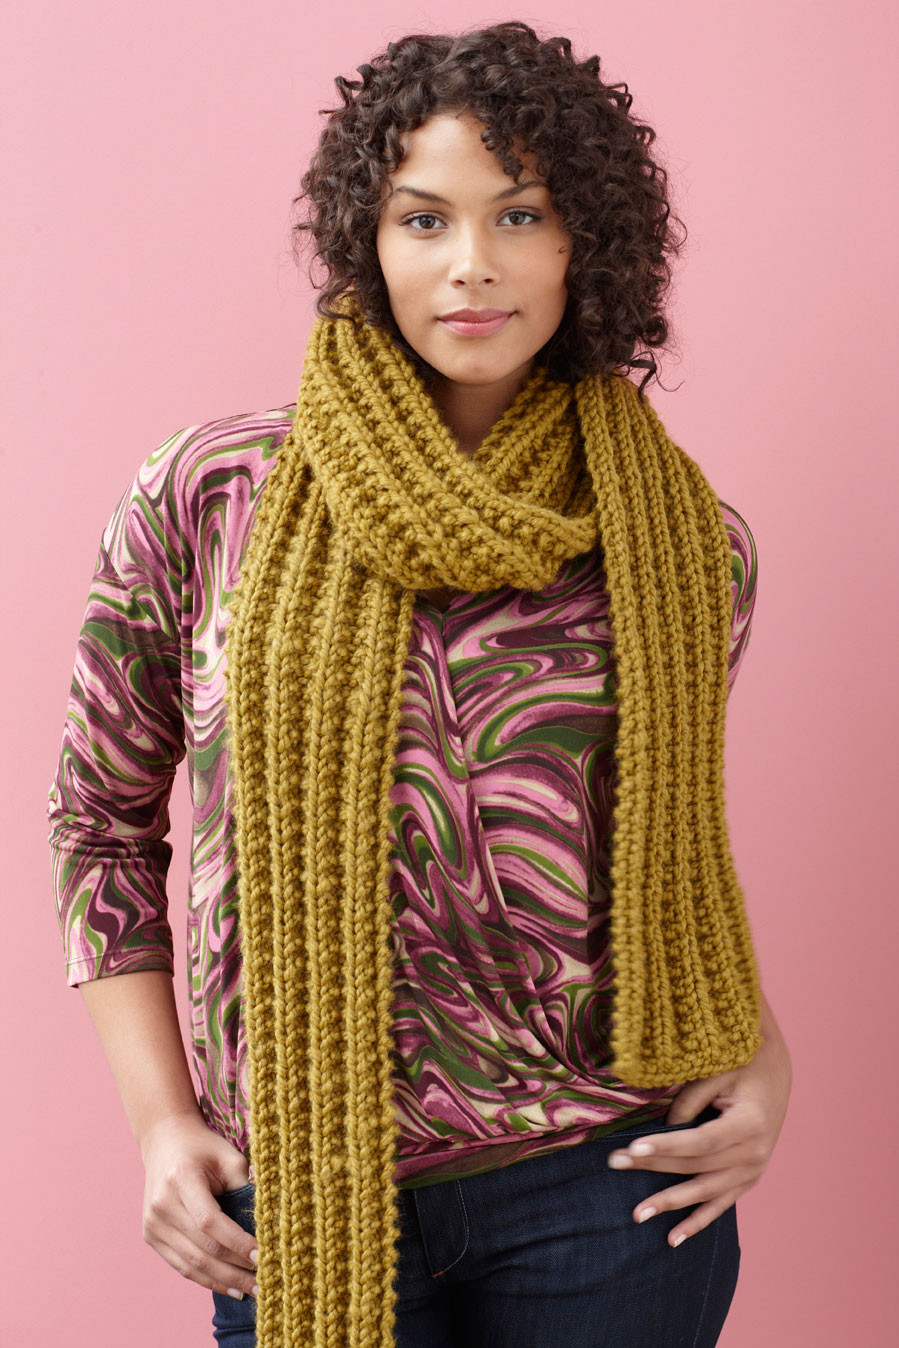 Awesome Save On Wool Ease Thick & Quick During November Lion Yarn Patterns Of Delightful 41 Images Lion Yarn Patterns